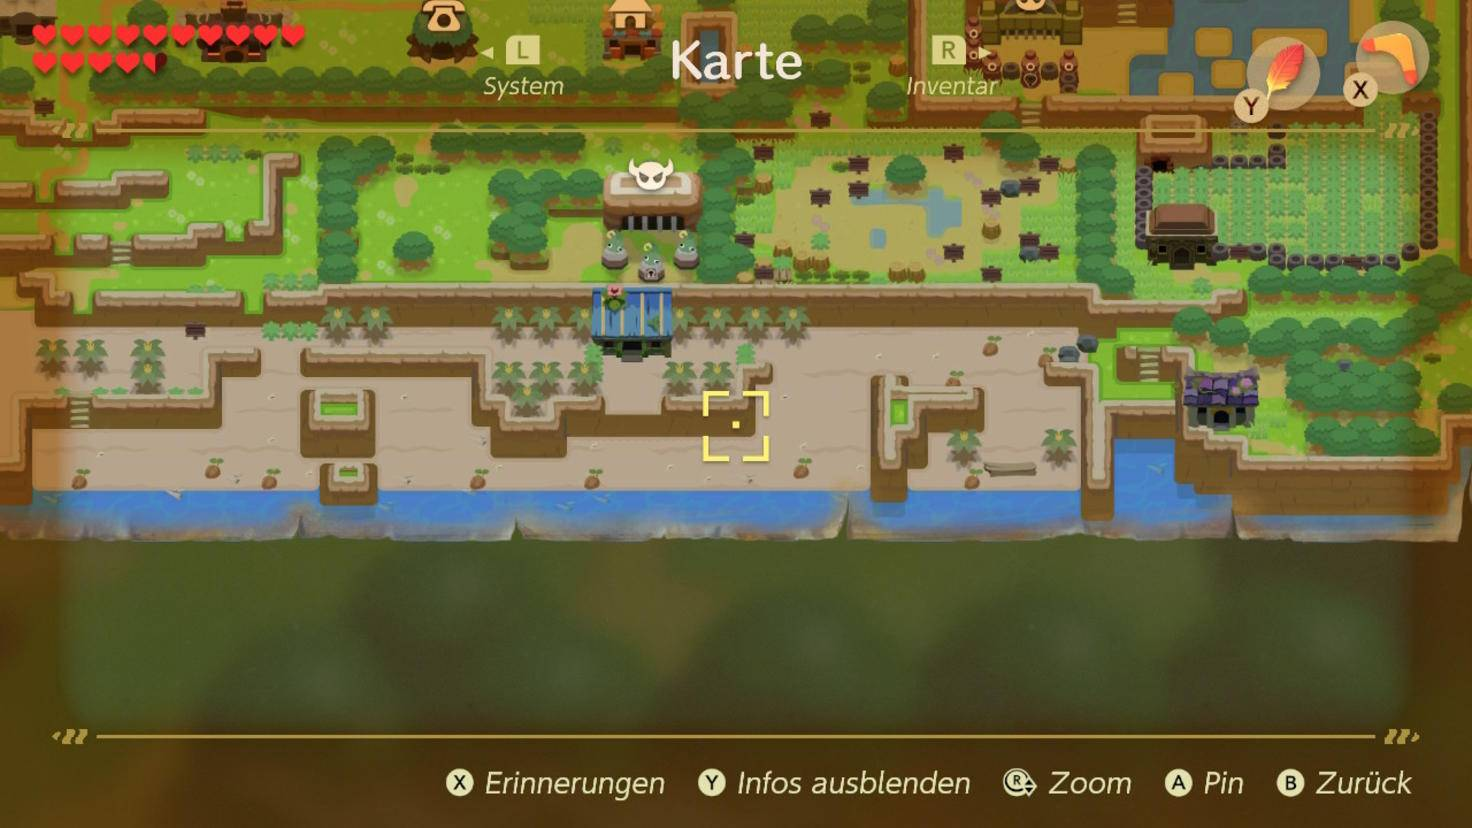 zelda-links-awakening-tauschgeschaeft-bumerang-haendler